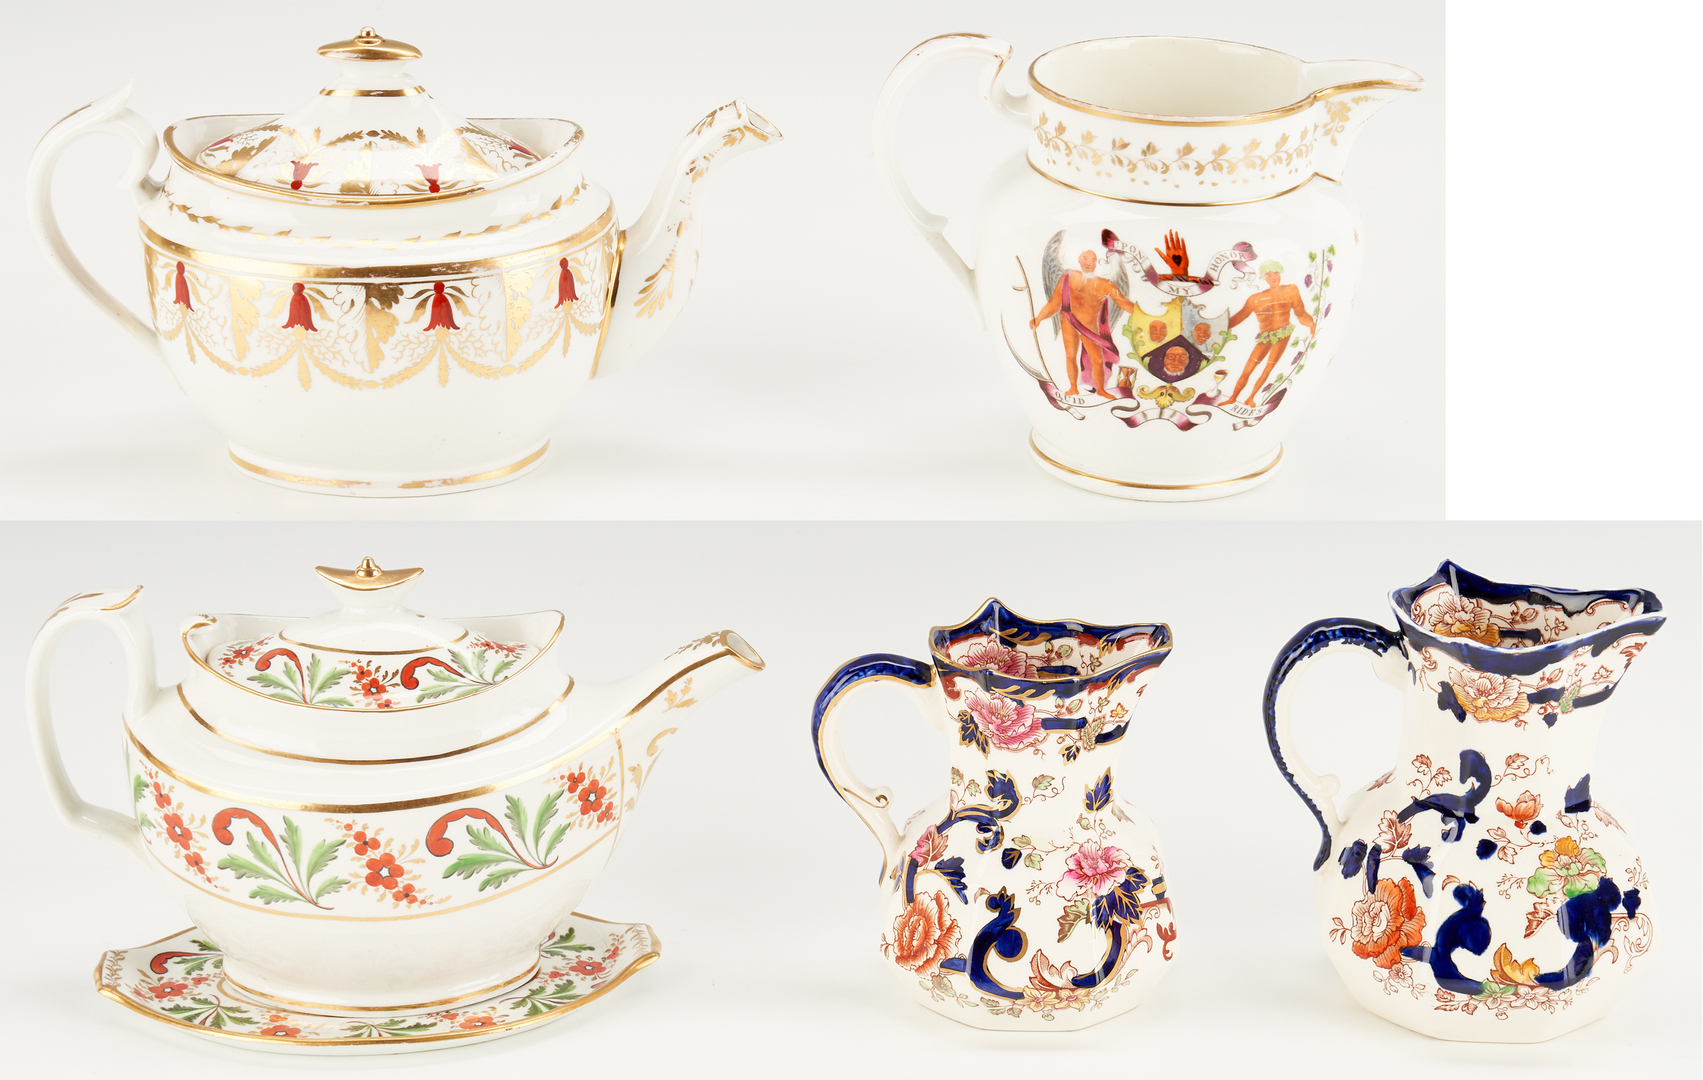 Lot 458: 6 English Ceramic items including Soft Paste Porcelain Teapots and Armorial